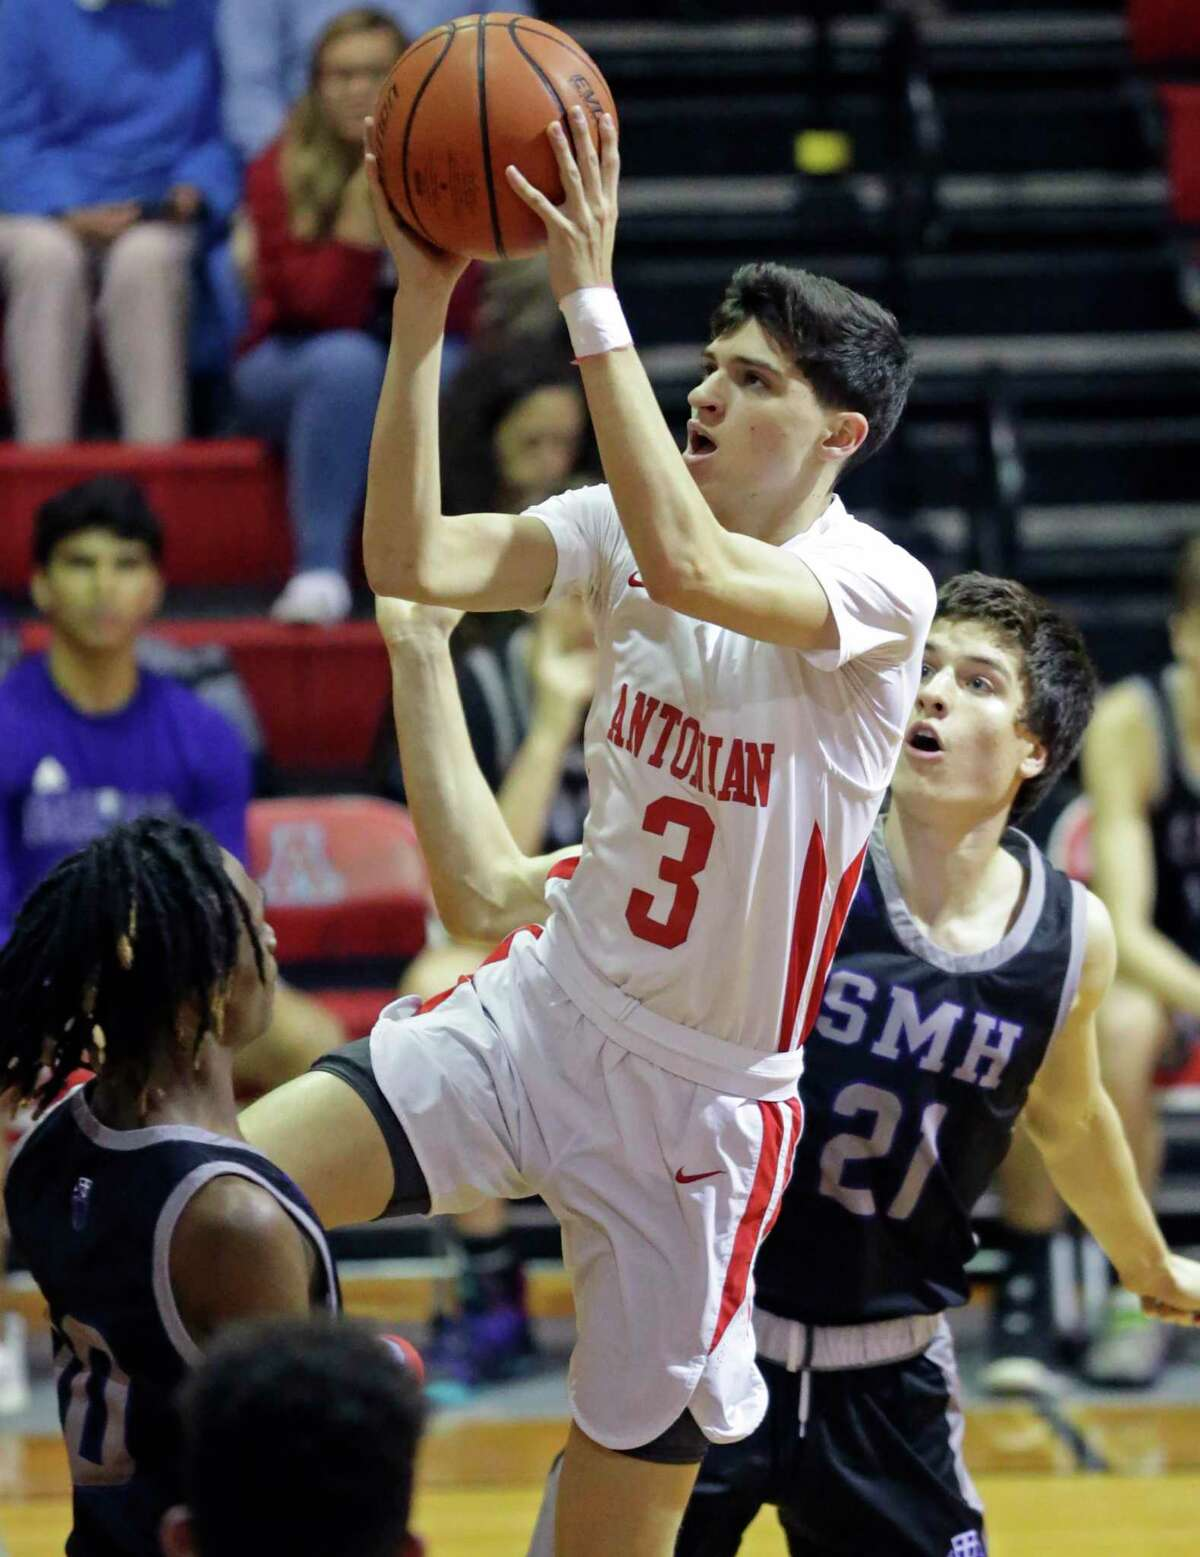 Antonian's Gavino Ramos scored his 2,000th career point in a win over St. Mary's Hall on Tuesday.